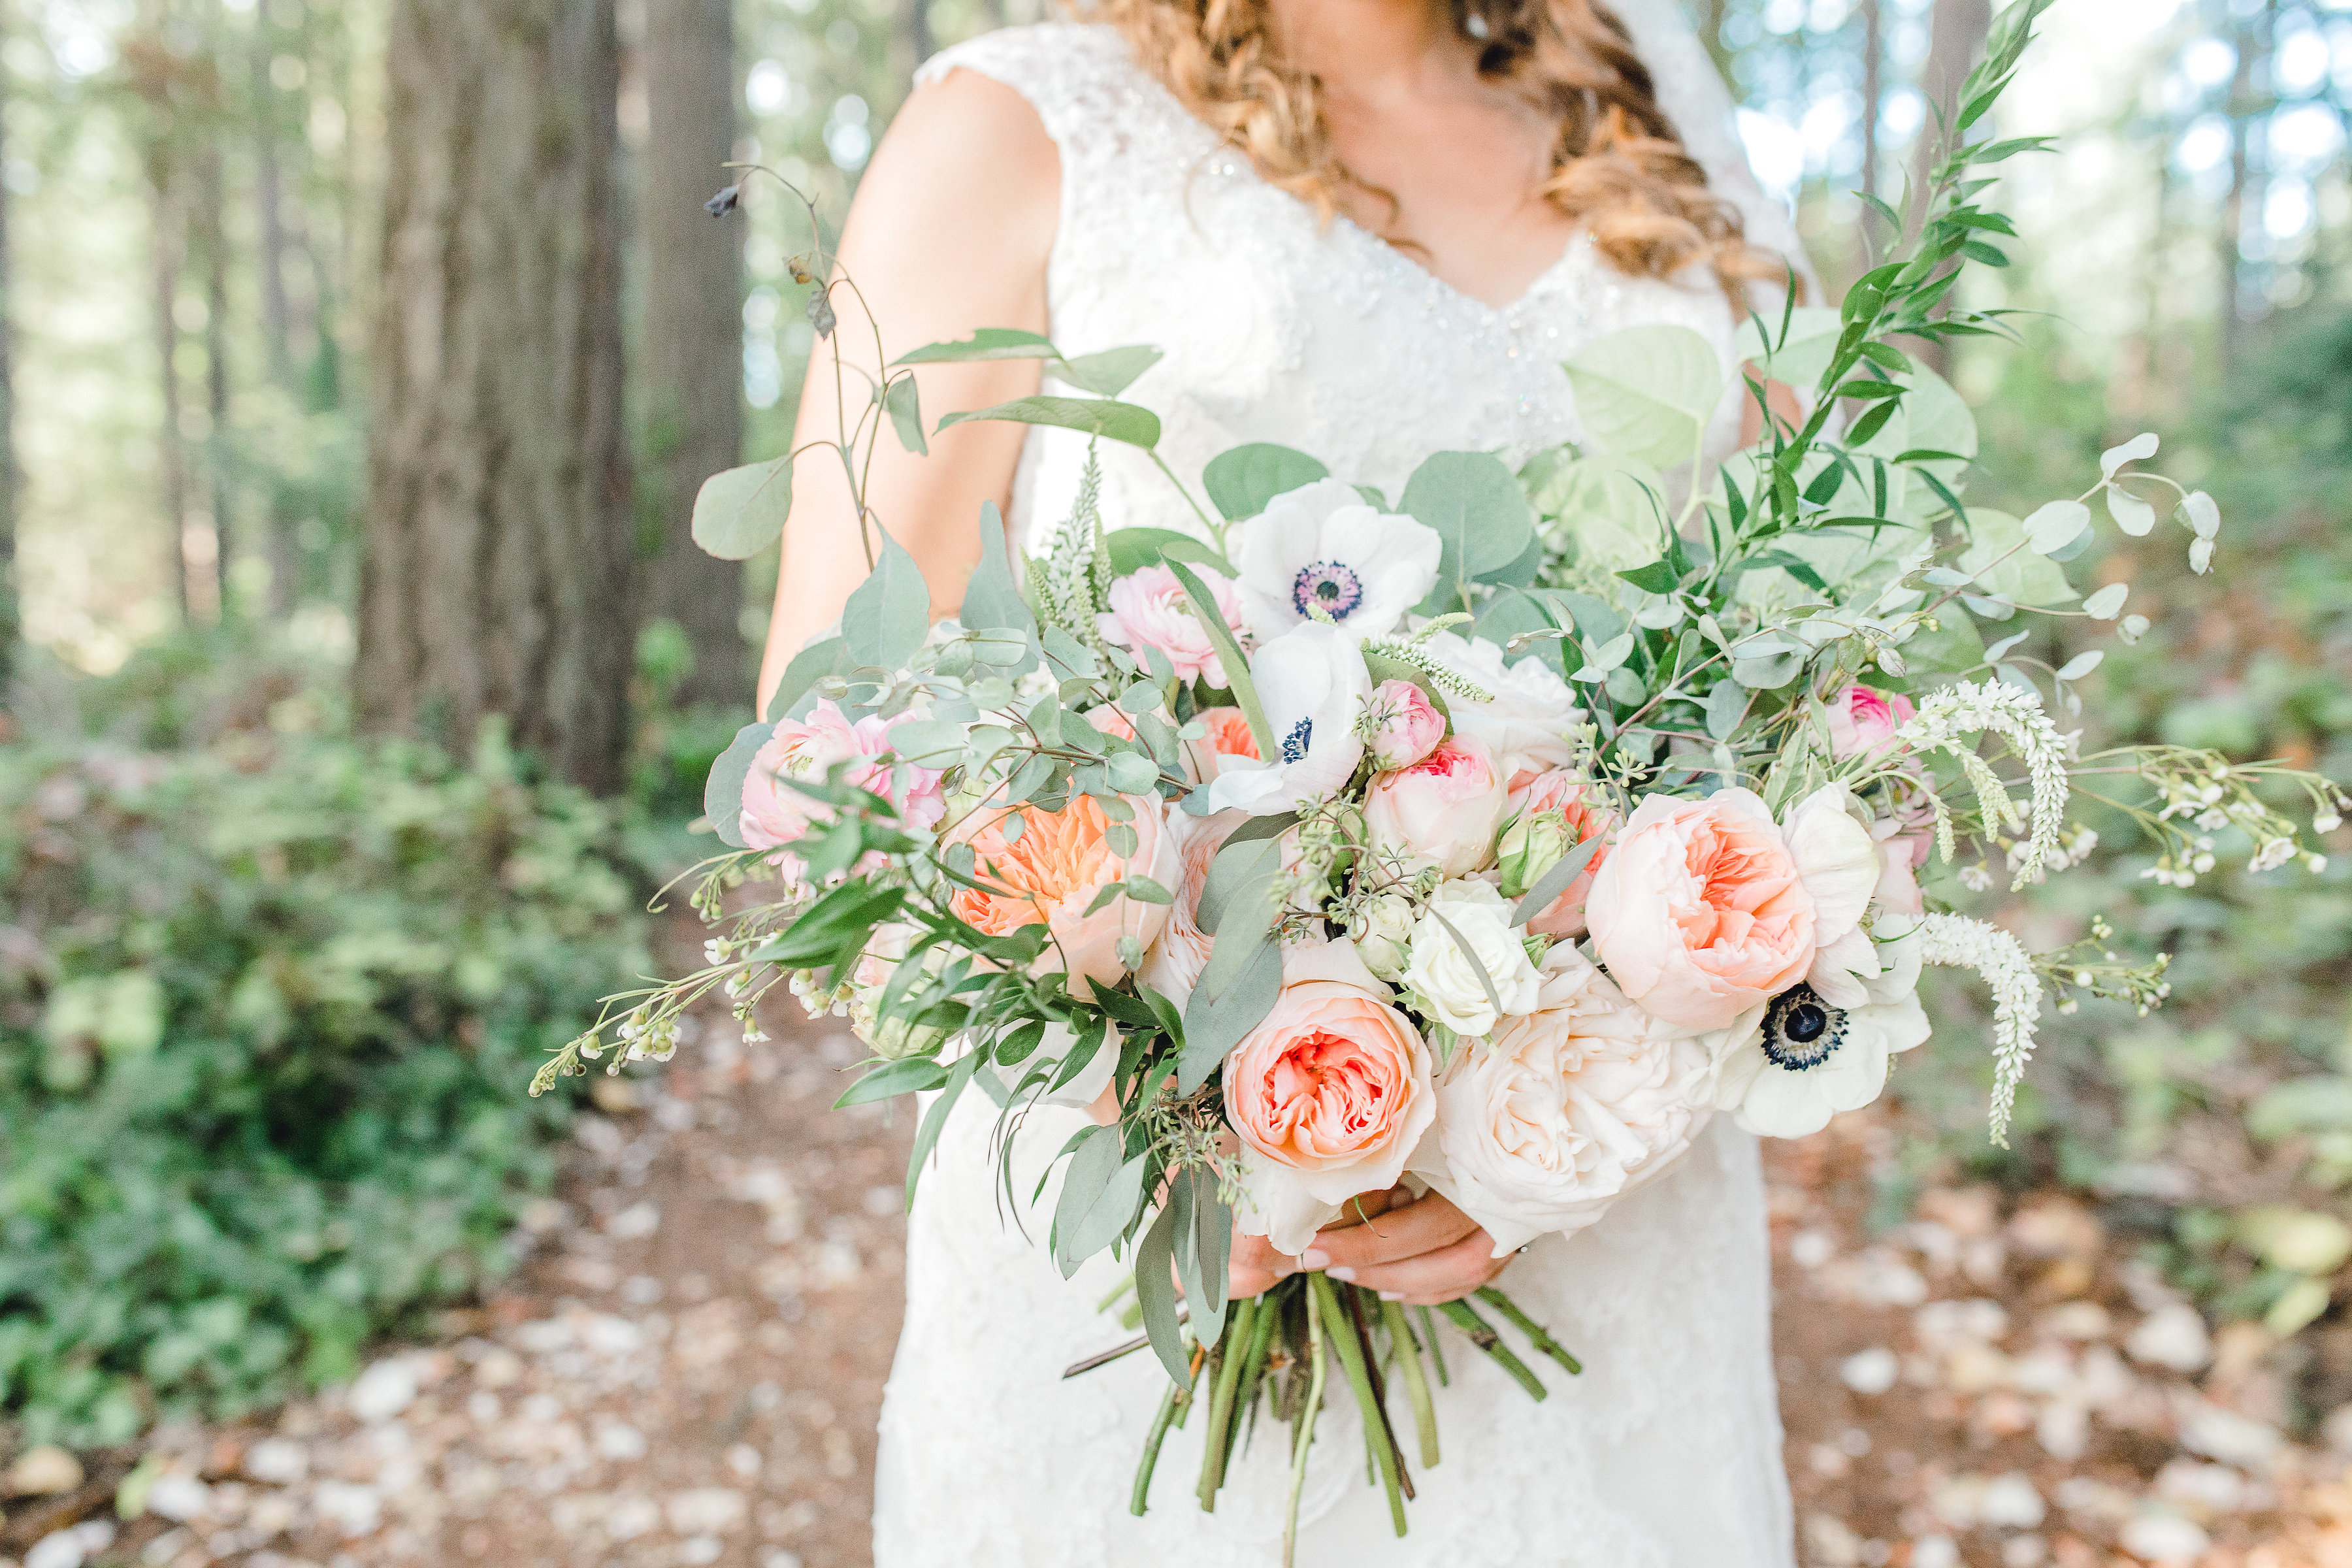 Seattle wedding, Washington wedding, bride and groom, PNW wedding, wedding inspiration, wedding flowers, Seattle bride, outdoor wedding, wedding florals, wedding flowers, wedding bouquet, Brixby + Pine